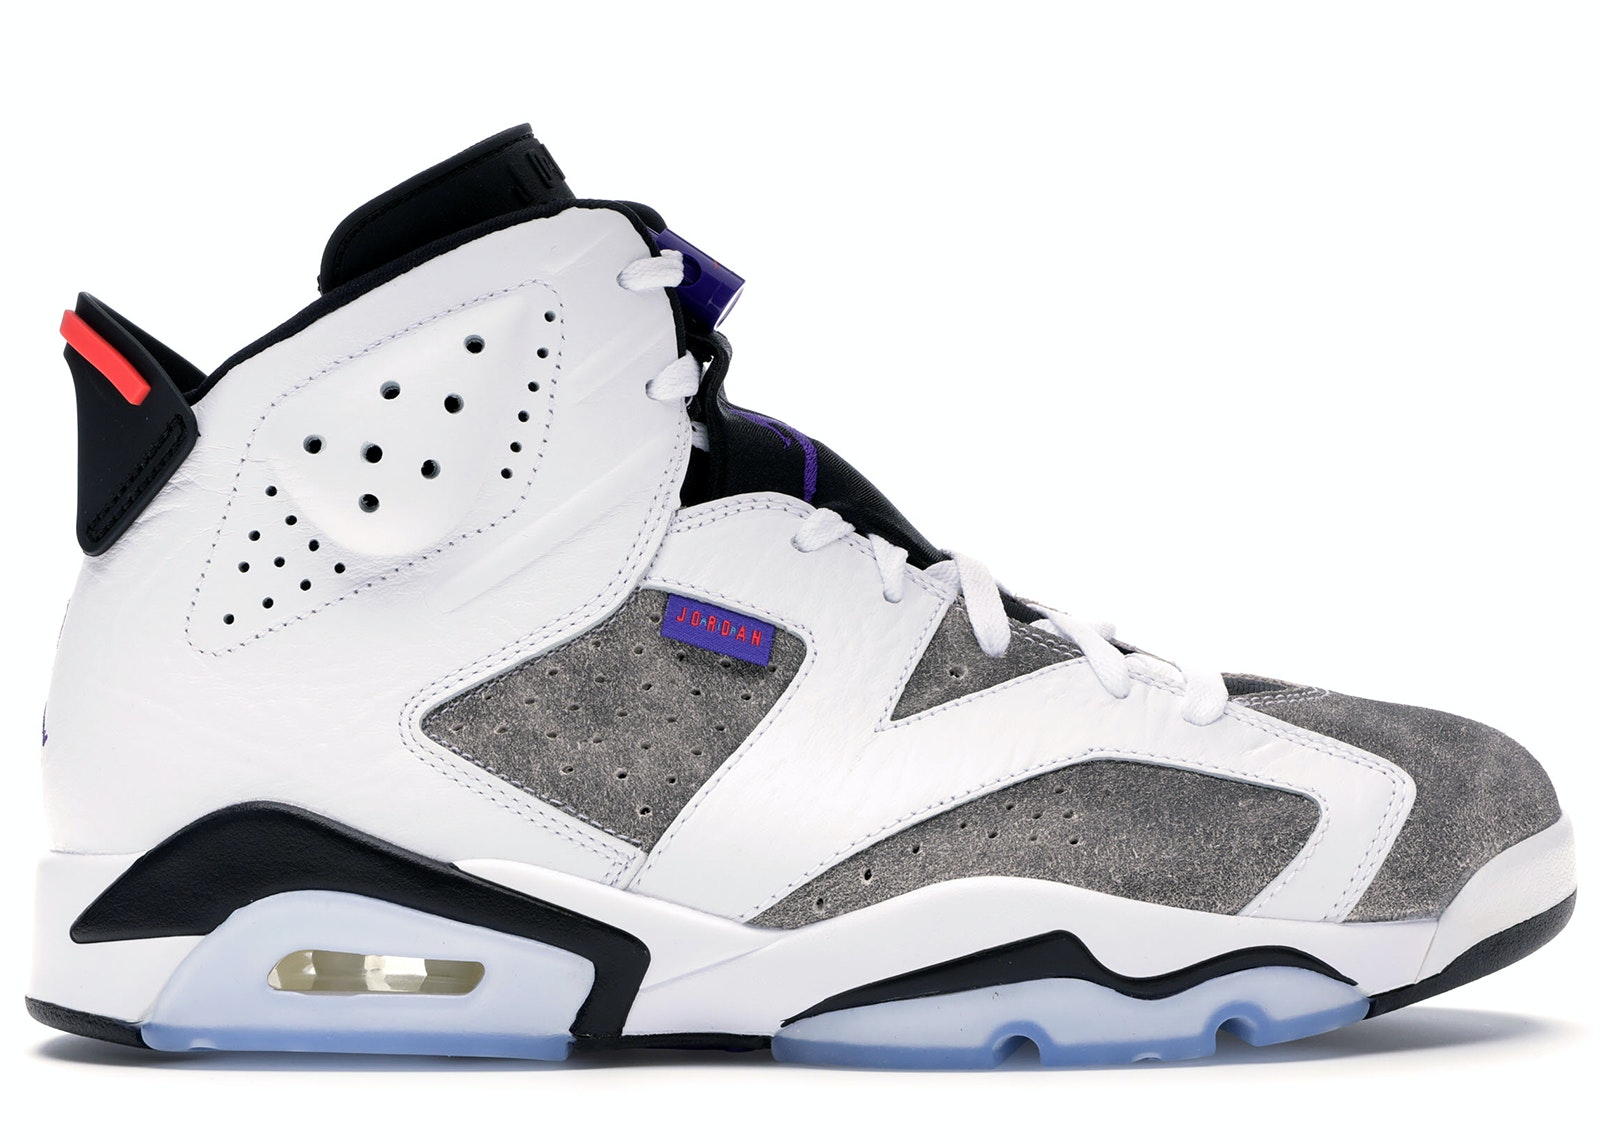 Jordan 6 Retro Flight Nostalgia